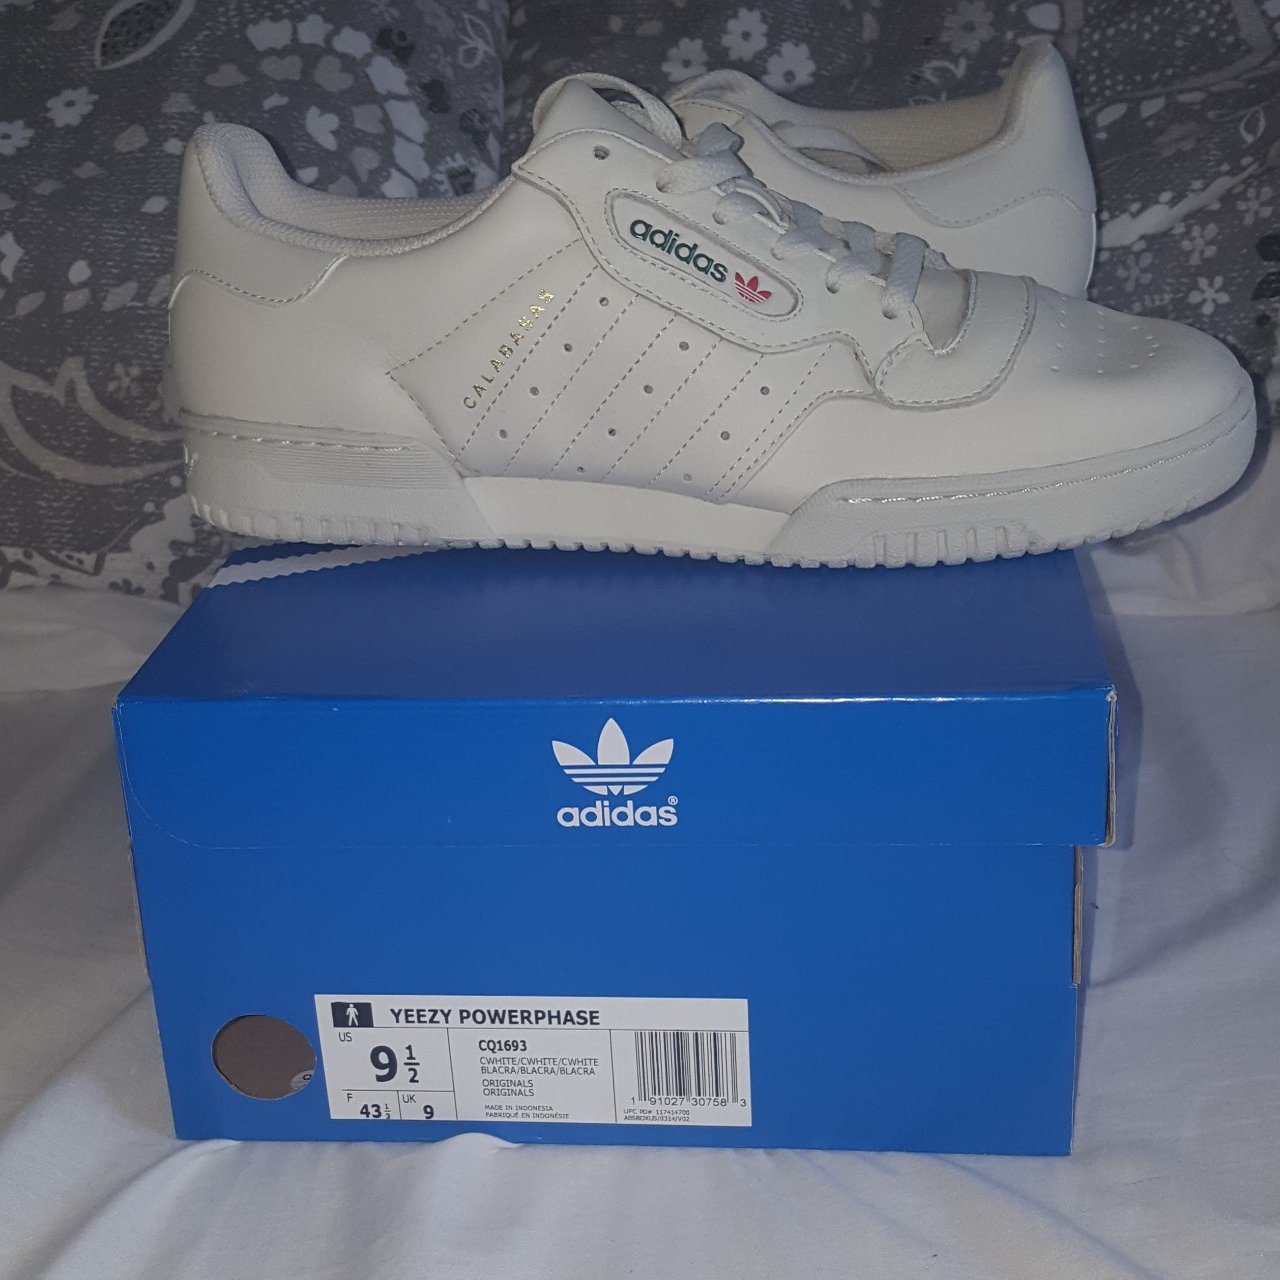 eb695a7d42f Adidas Yeezy Powerphase Calabasas Size 9 Uk Fits true to is - Depop